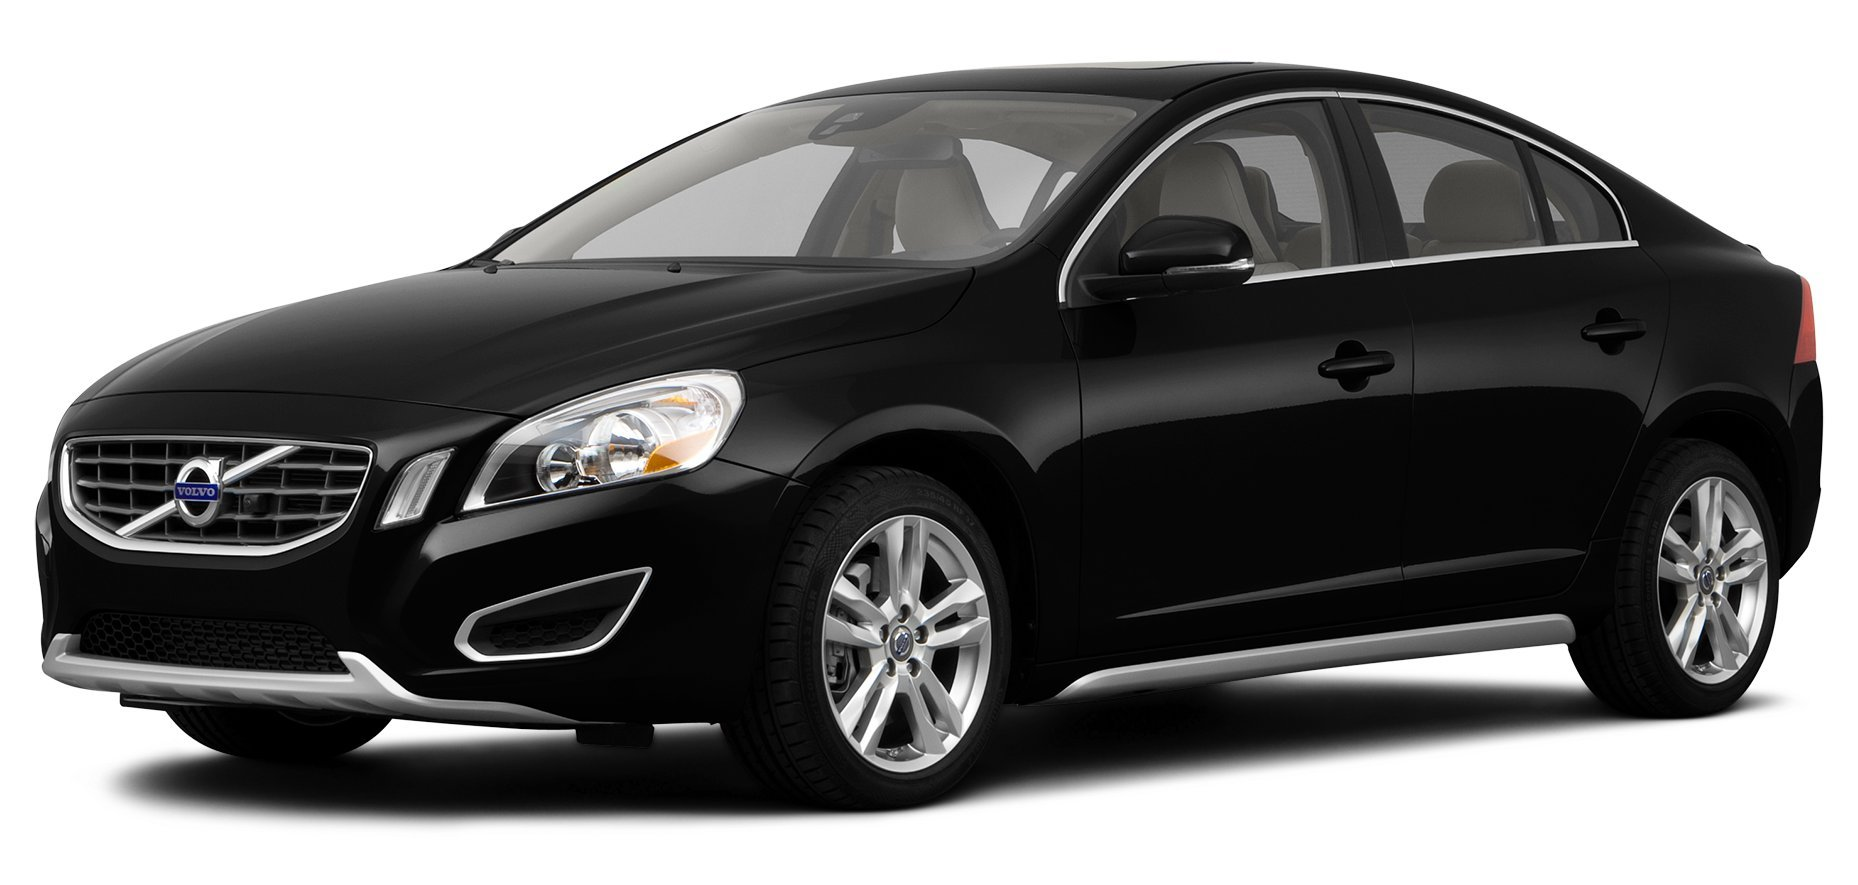 2012 volvo s60 reviews images and specs. Black Bedroom Furniture Sets. Home Design Ideas